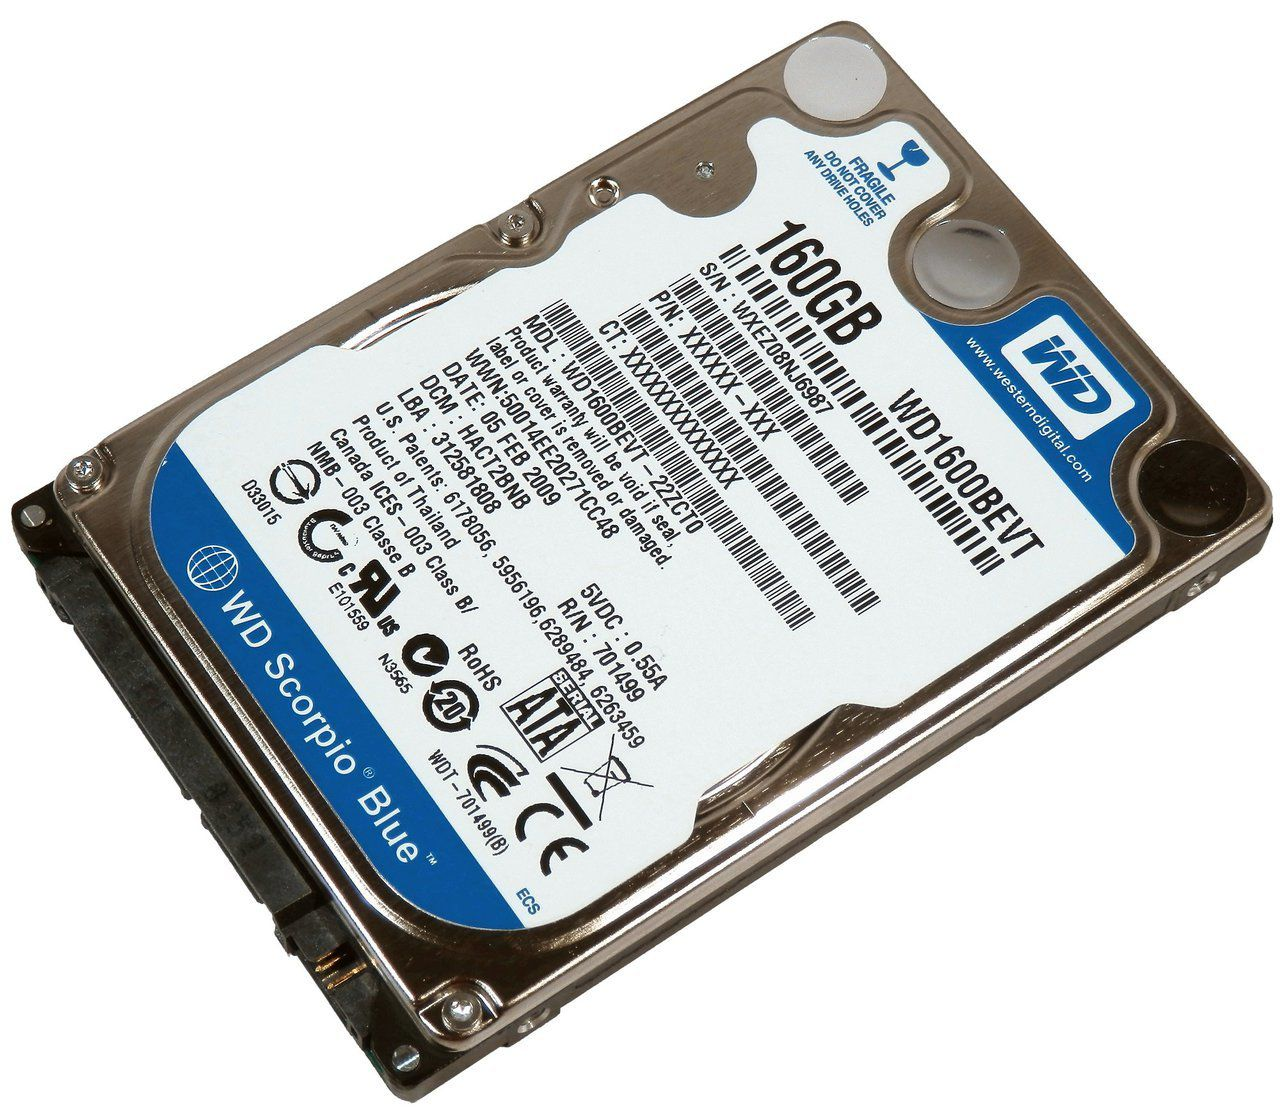 HD NOTEBOOK | SATA | WD1600BEVT | WESTERN DIGITAL | 160GB | S/N